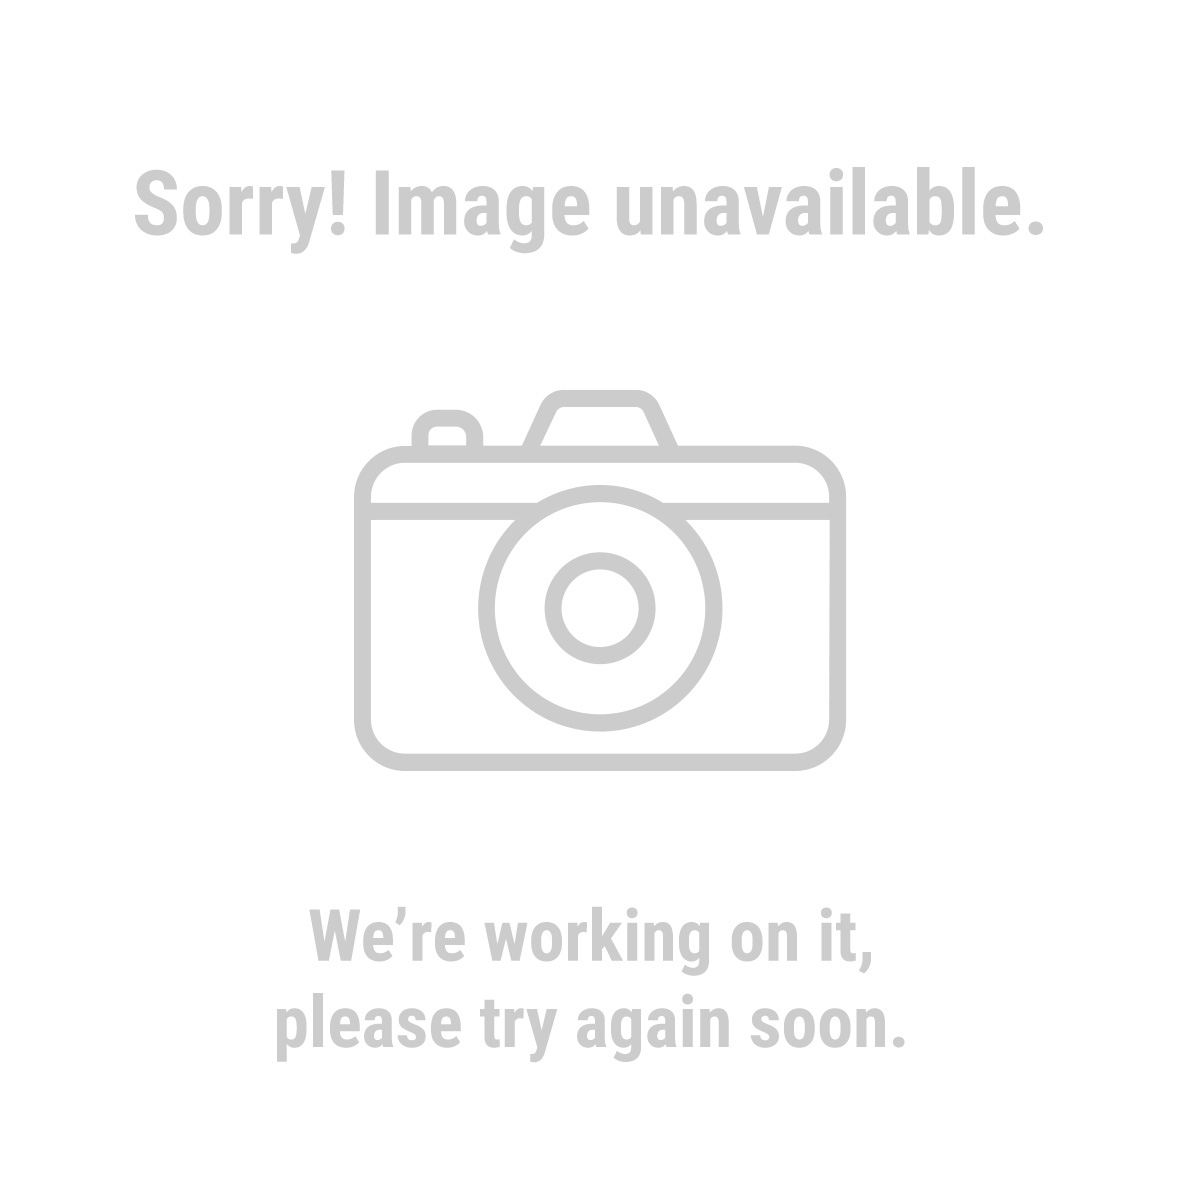 Portland® 62567 13 in. Electric String Trimmer